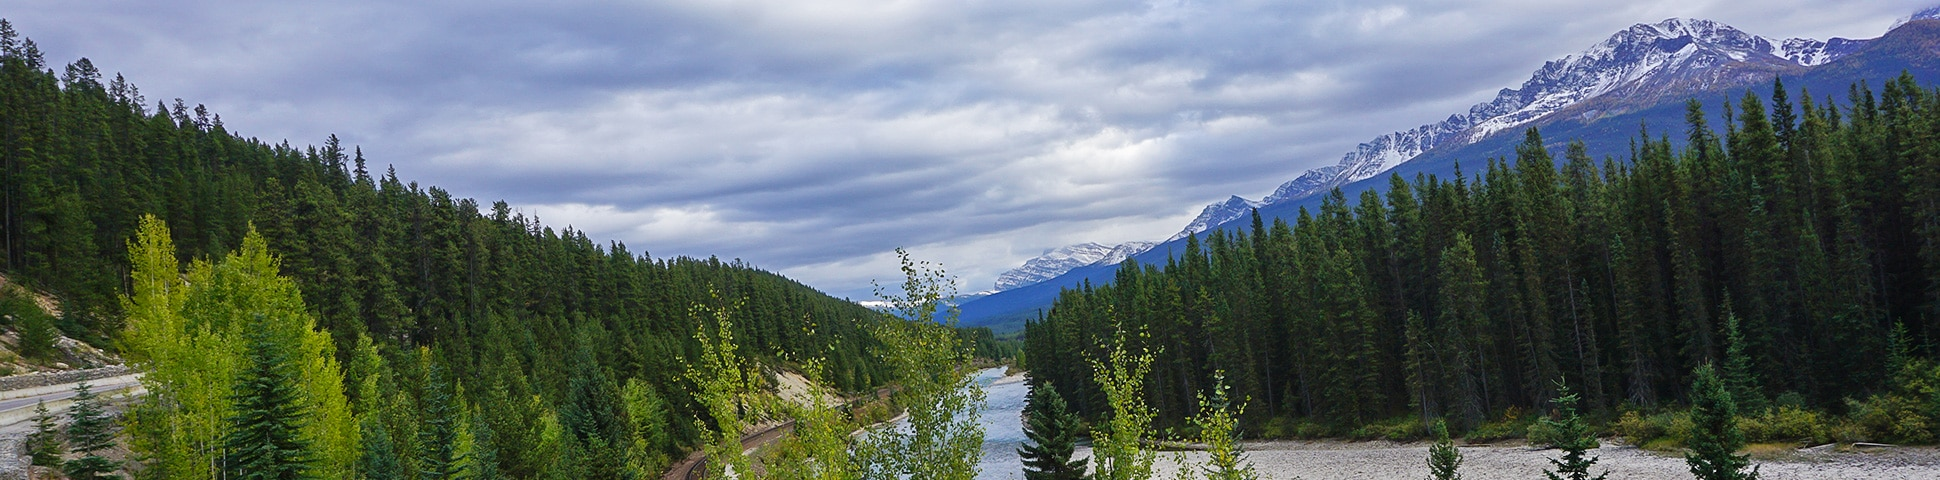 Panorama of Banff to Lake Louise road biking route in the Canadian Rockies